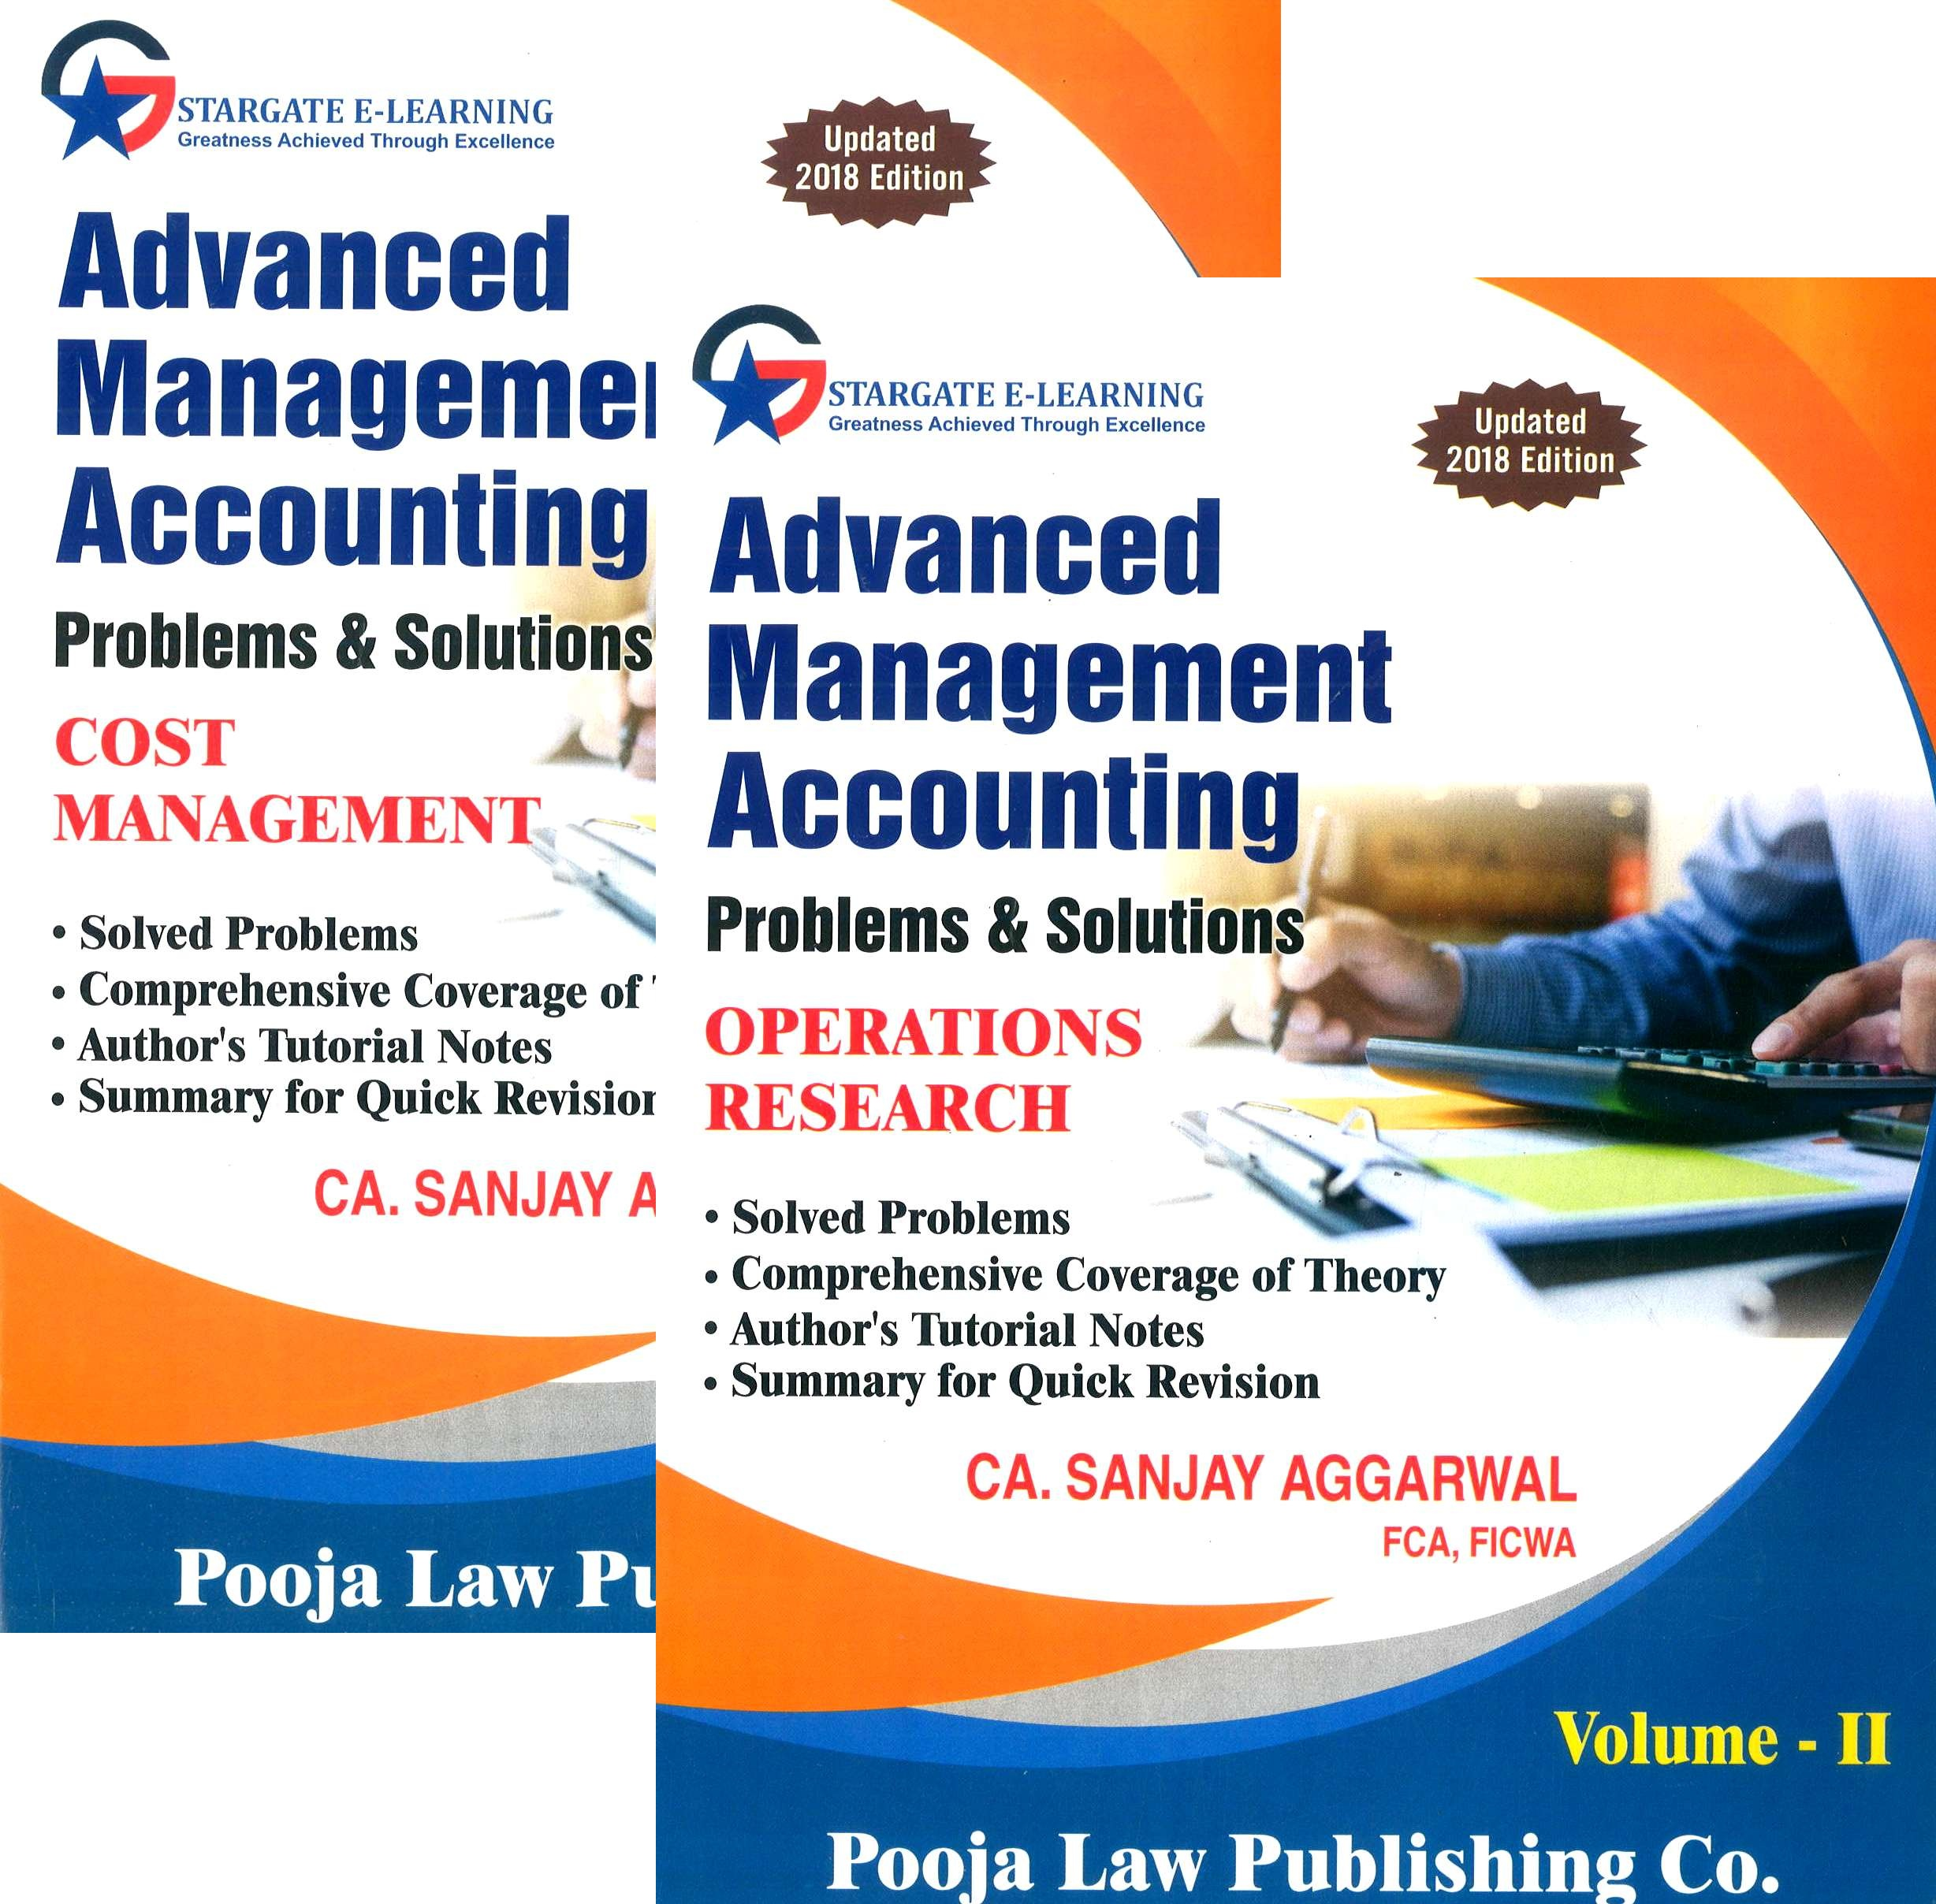 Pooja Law House Advanced Management Accounting (Cost Management and Operations Research)Problems & Solutions ( Sets of 2 volumes )for CA Final By Sanjay Aggarwal Applicable for May 2019 Exam (Pooja Law House Publishing) Edition  2019